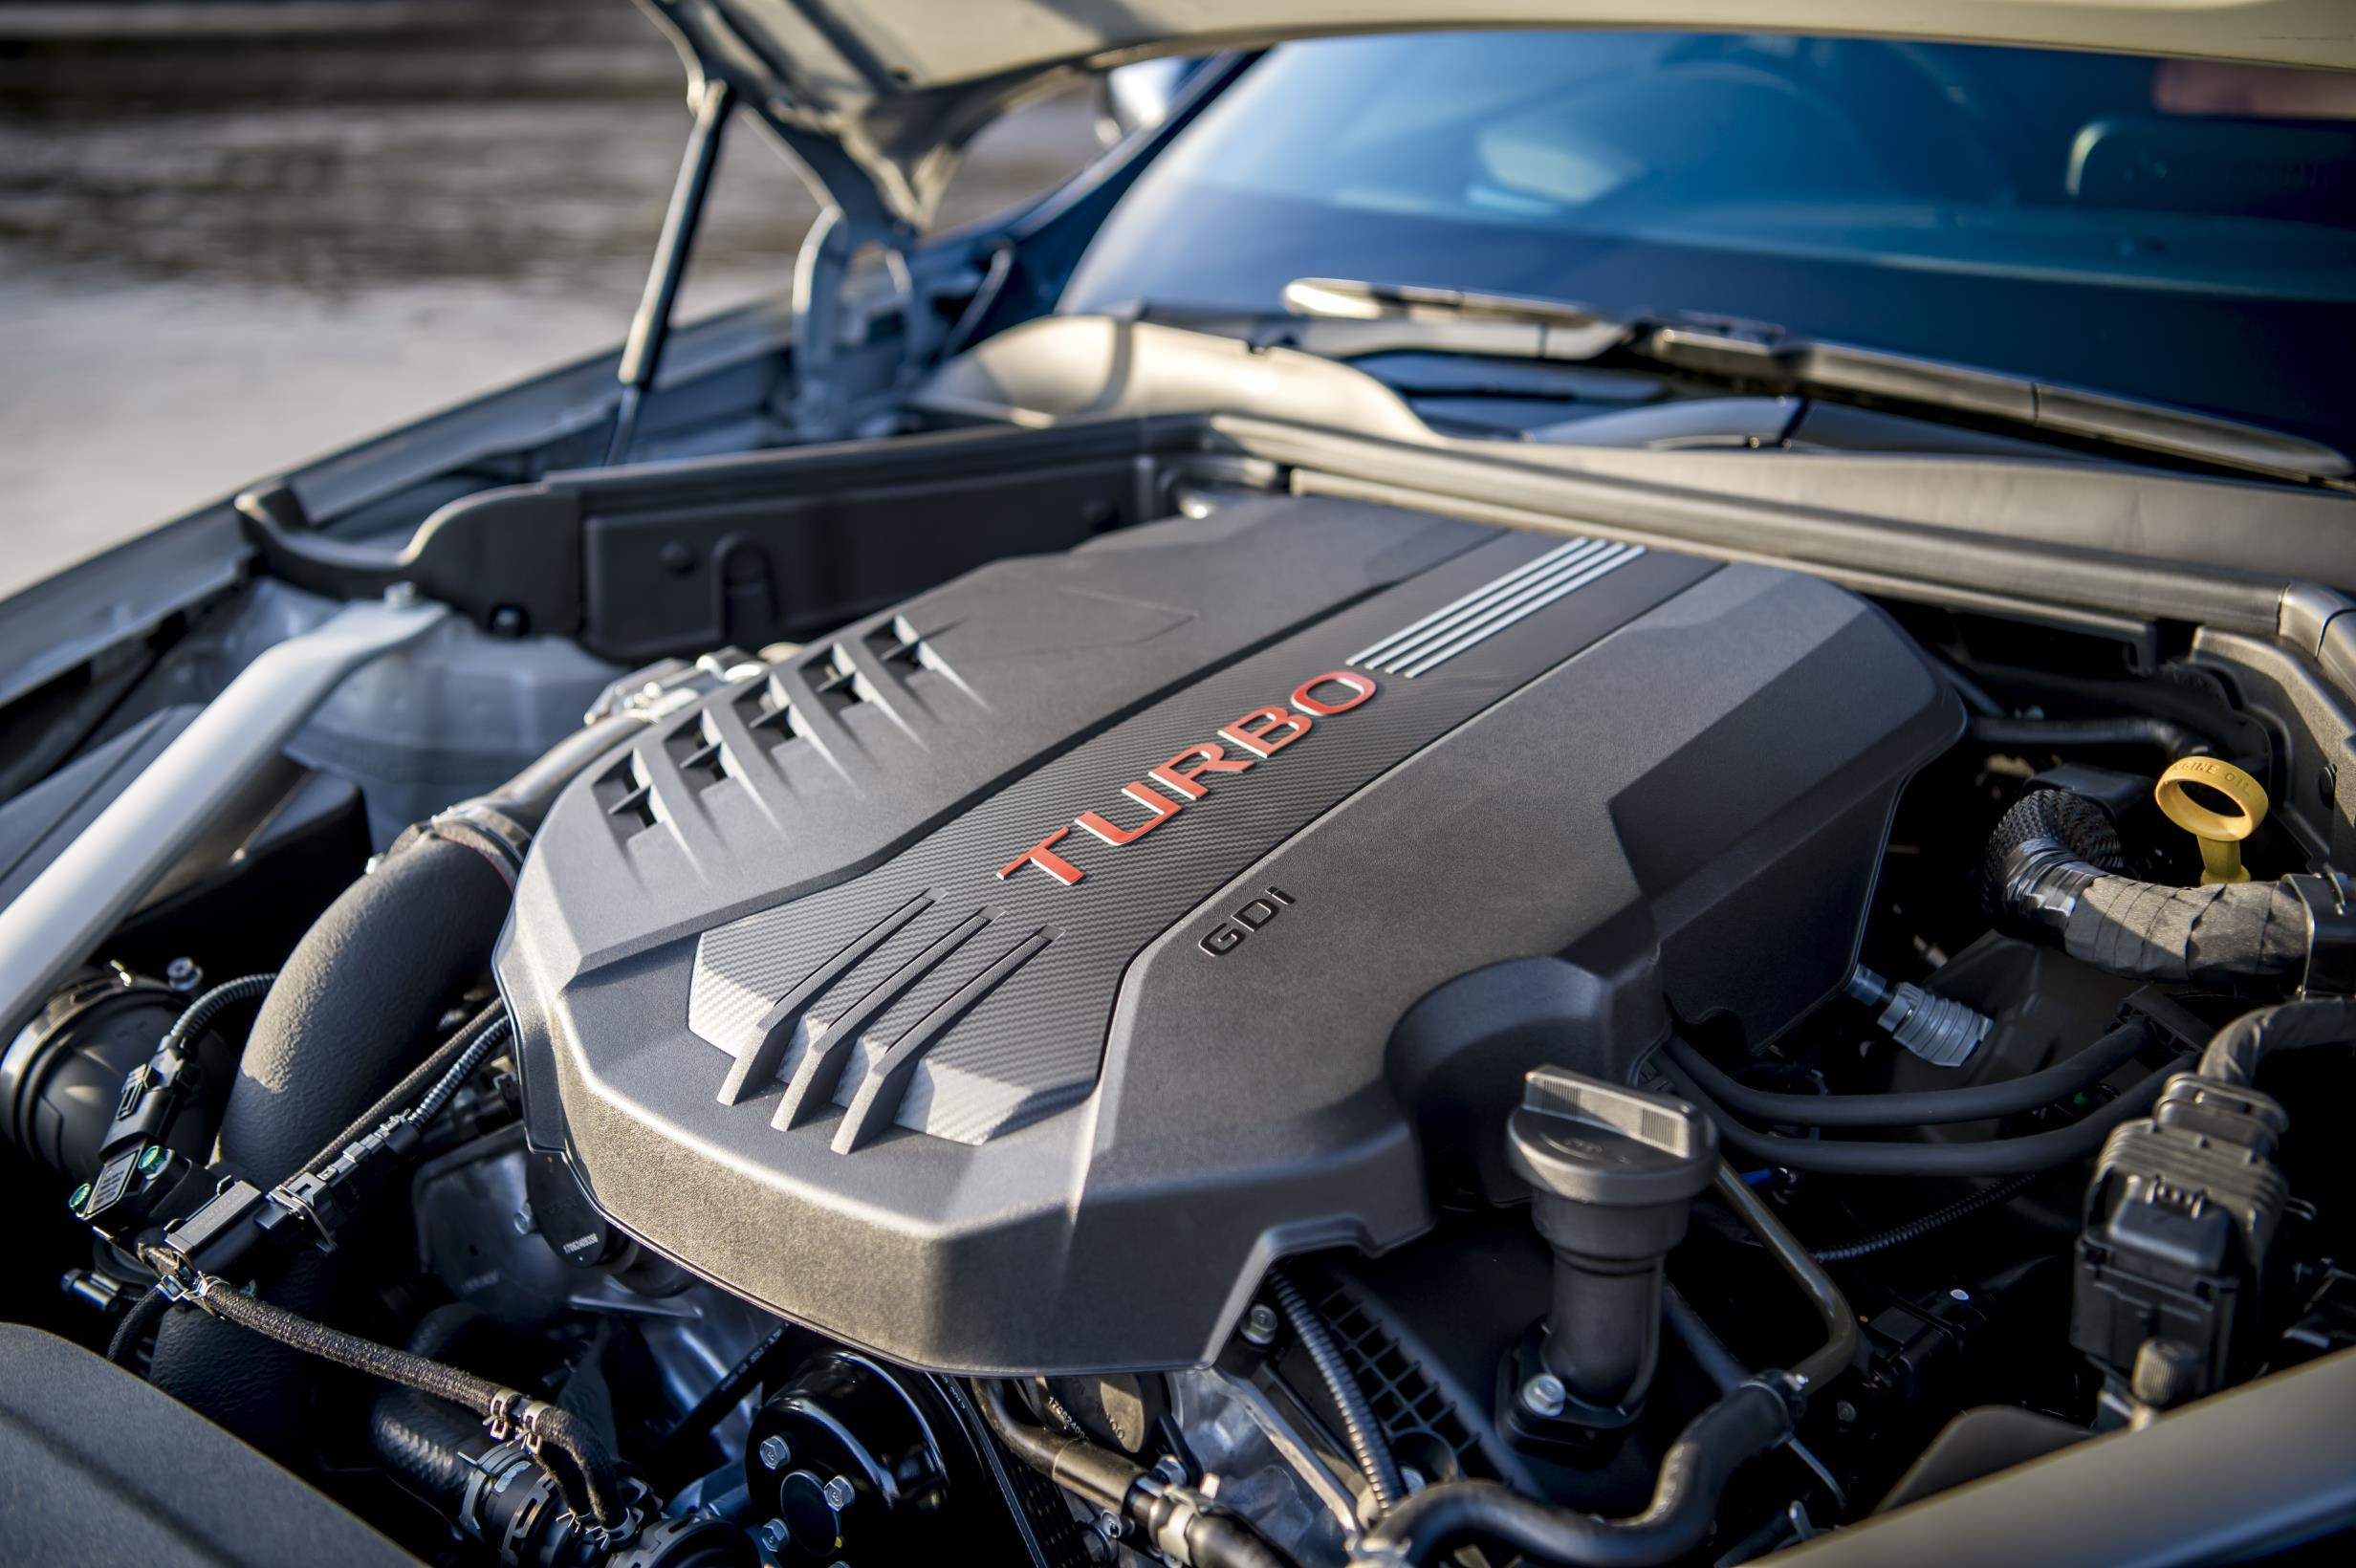 Kia Stinger turbo engine